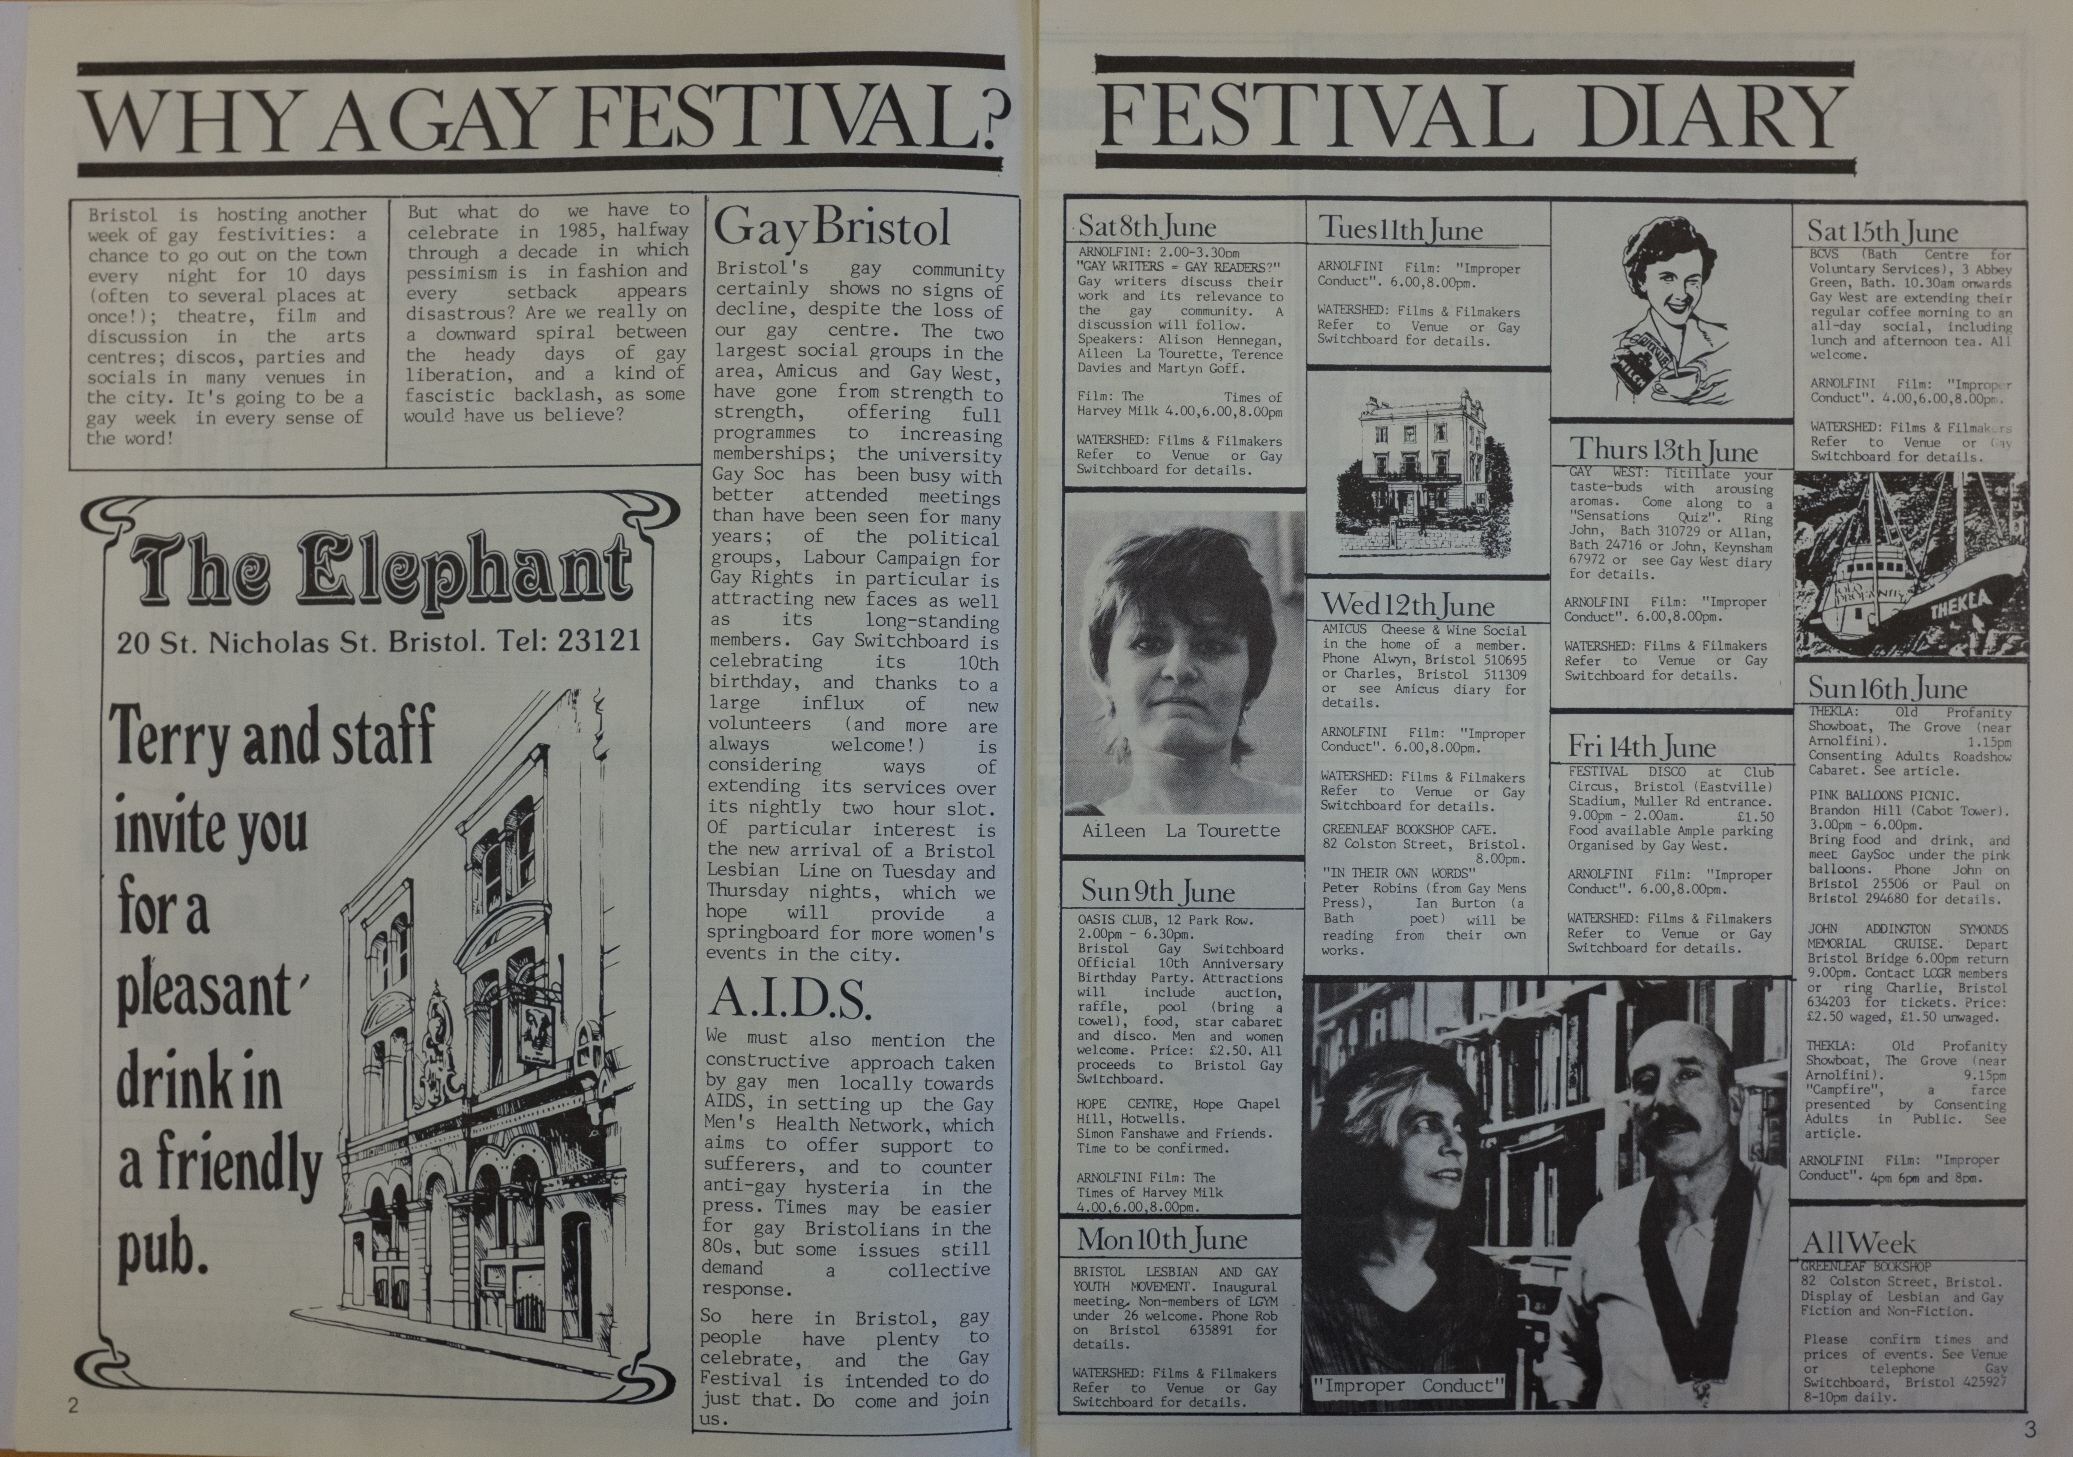 The inside of the Gay Bristol 1985 program, featuring a list of events and film screenings